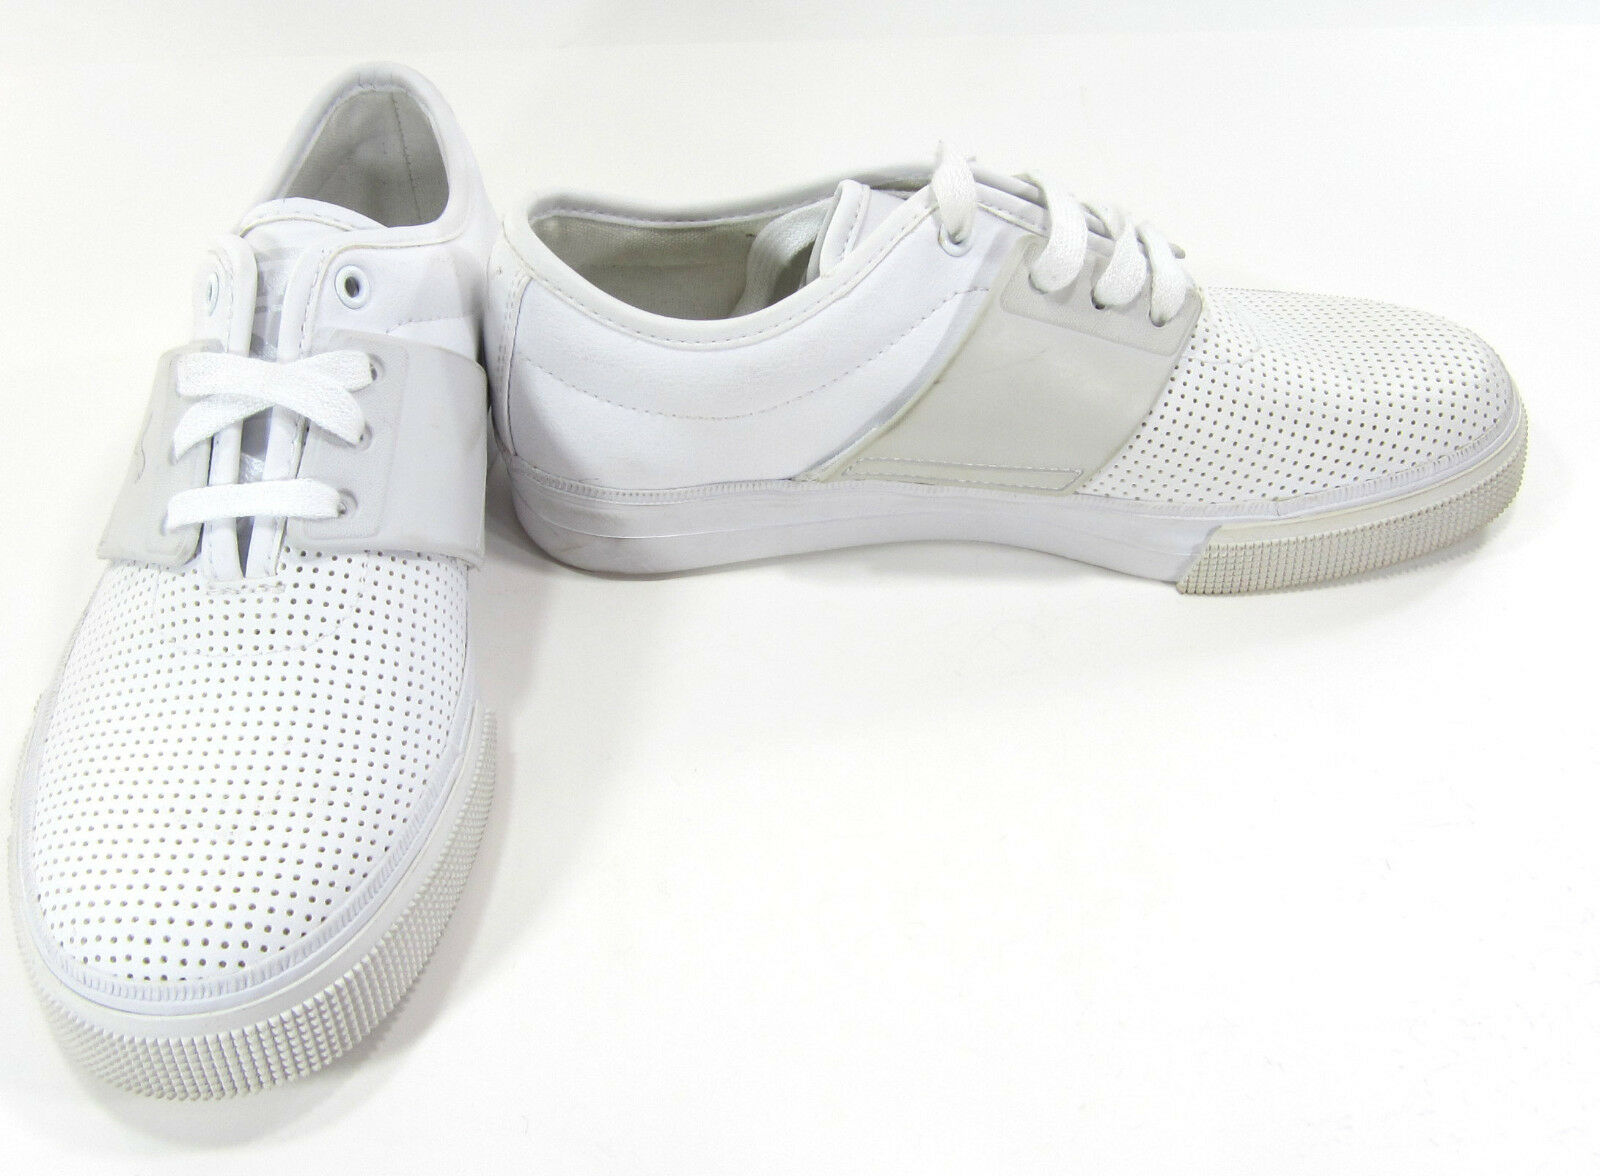 Puma Shoes El Ace Leather Perforated White Sneakers Comfortable Cheap women's shoes women's shoes